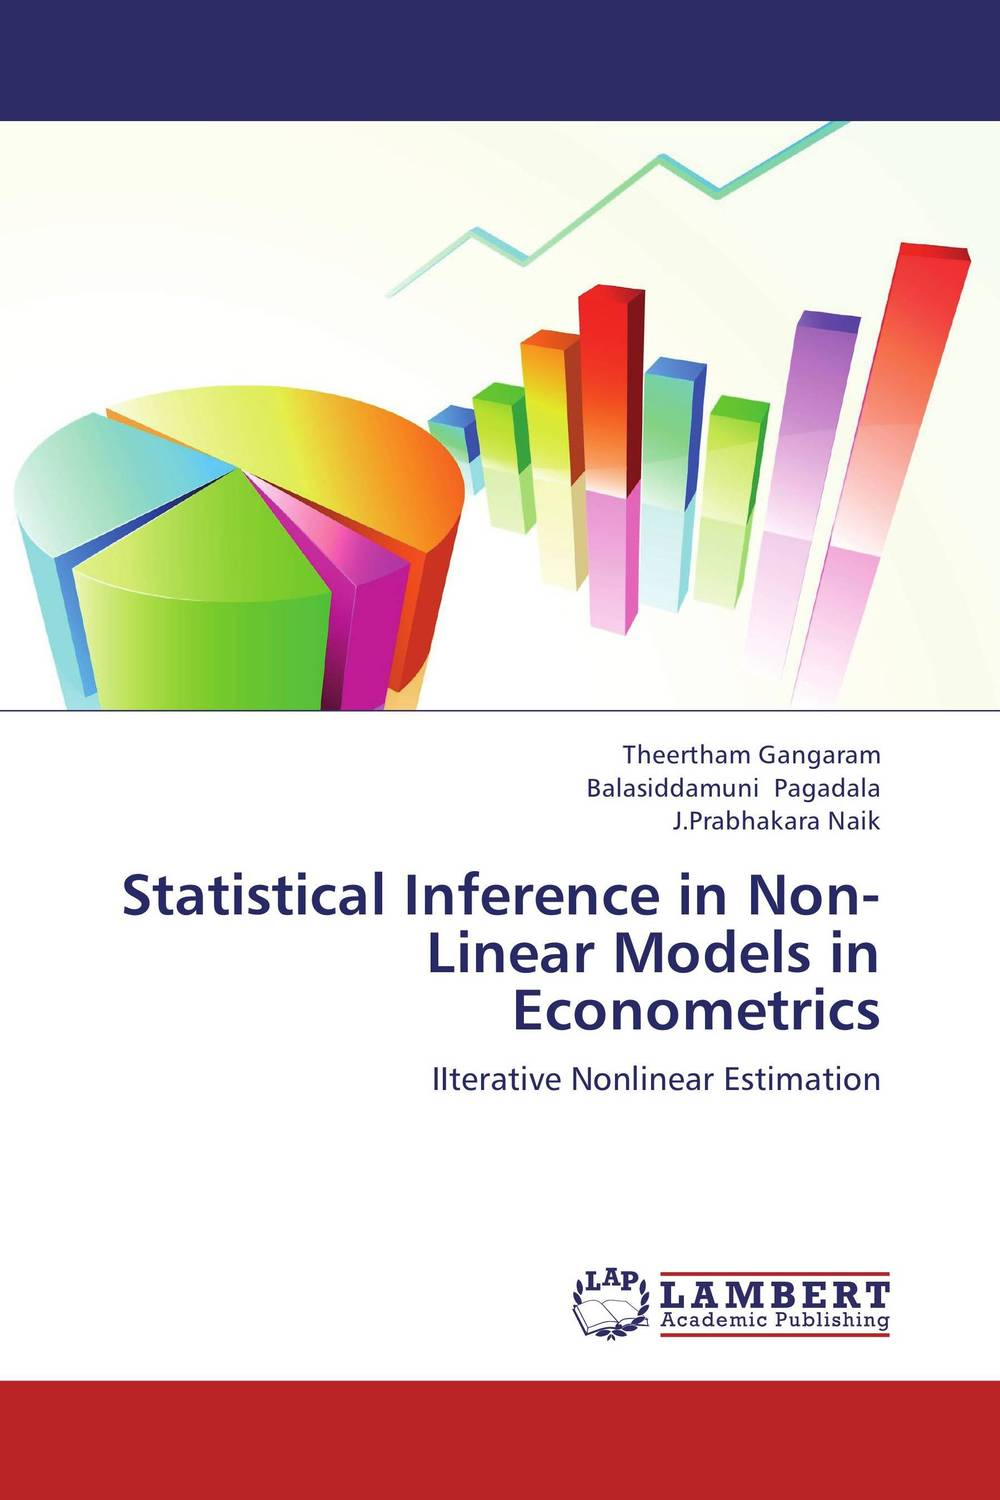 Statistical Inference in Non-Linear Models in Econometrics